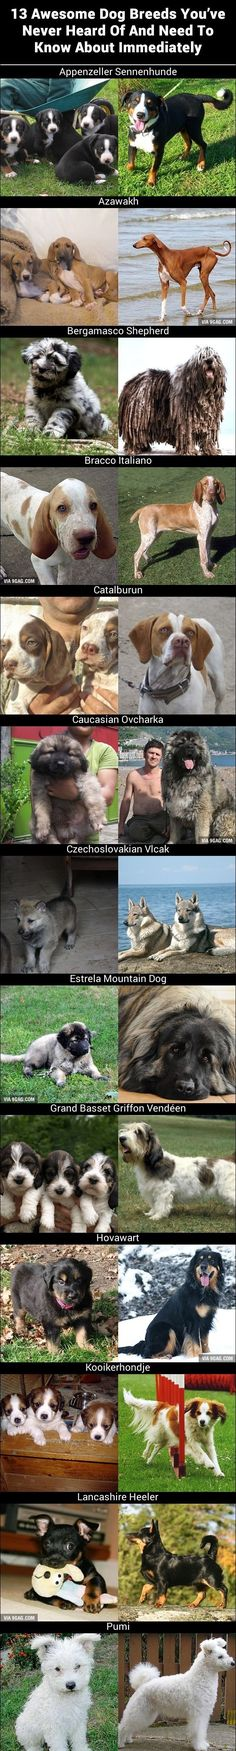 Awesome dog breeds